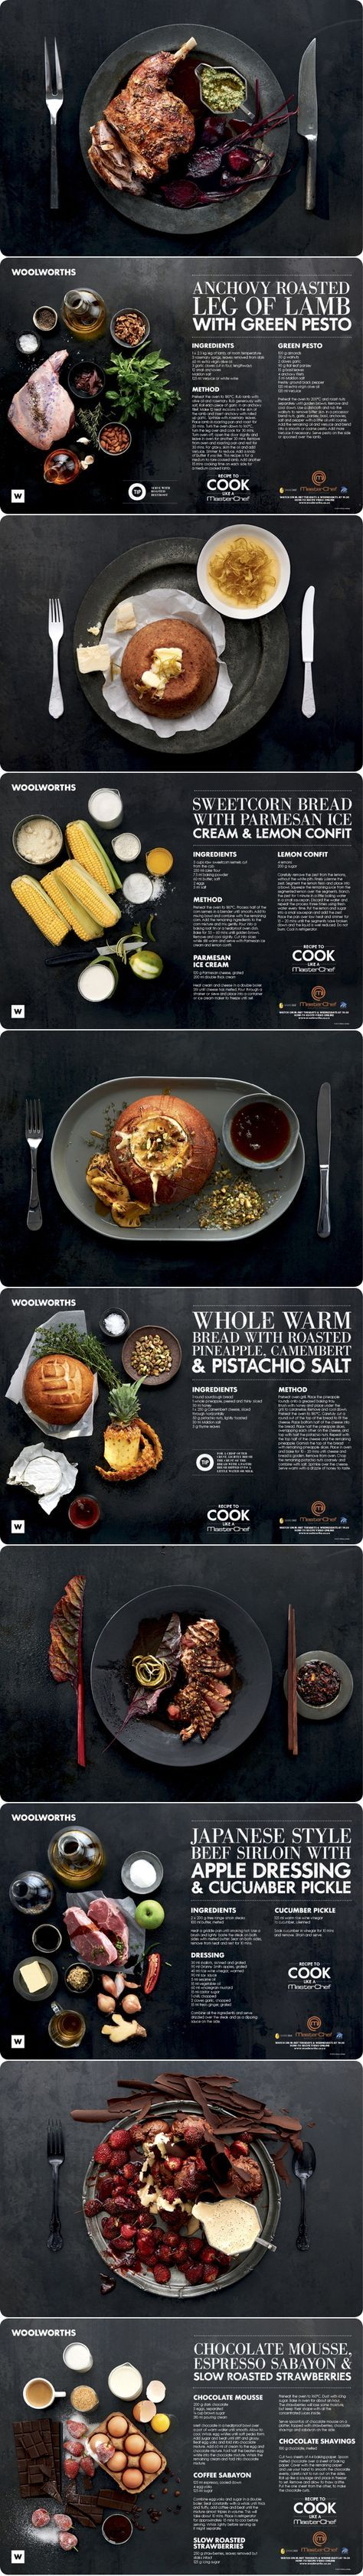 Nice use of grids, easy to read, great on black background - Laura Wall on behance